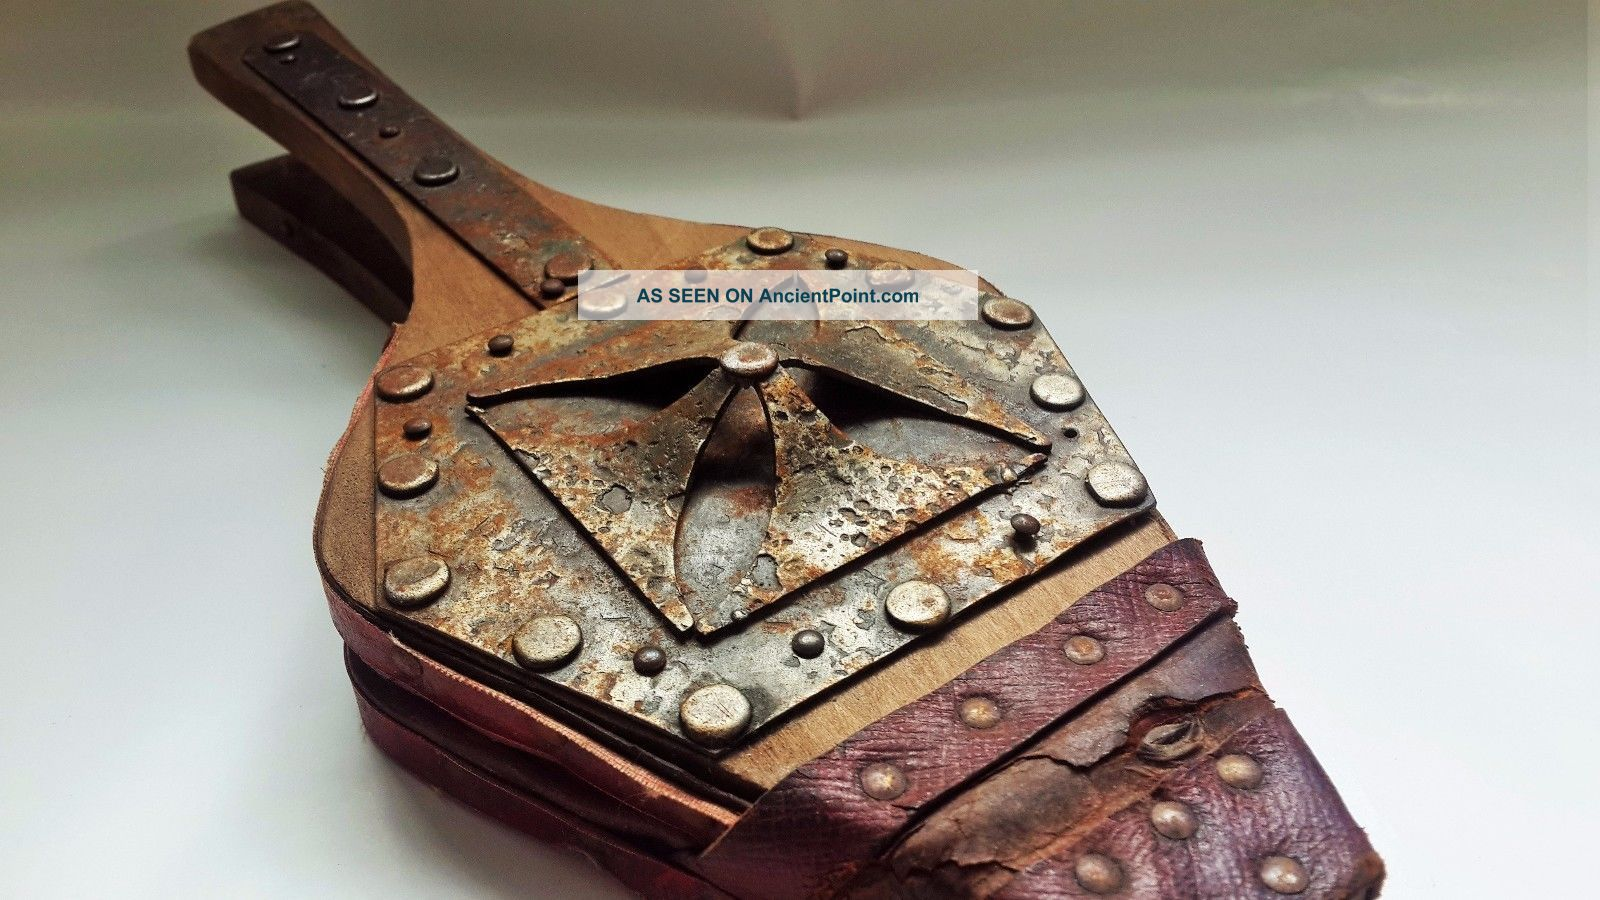 Antique Bellows 18th Century Maltese Cross Steel Leather Wood Made In France Hearth Ware photo